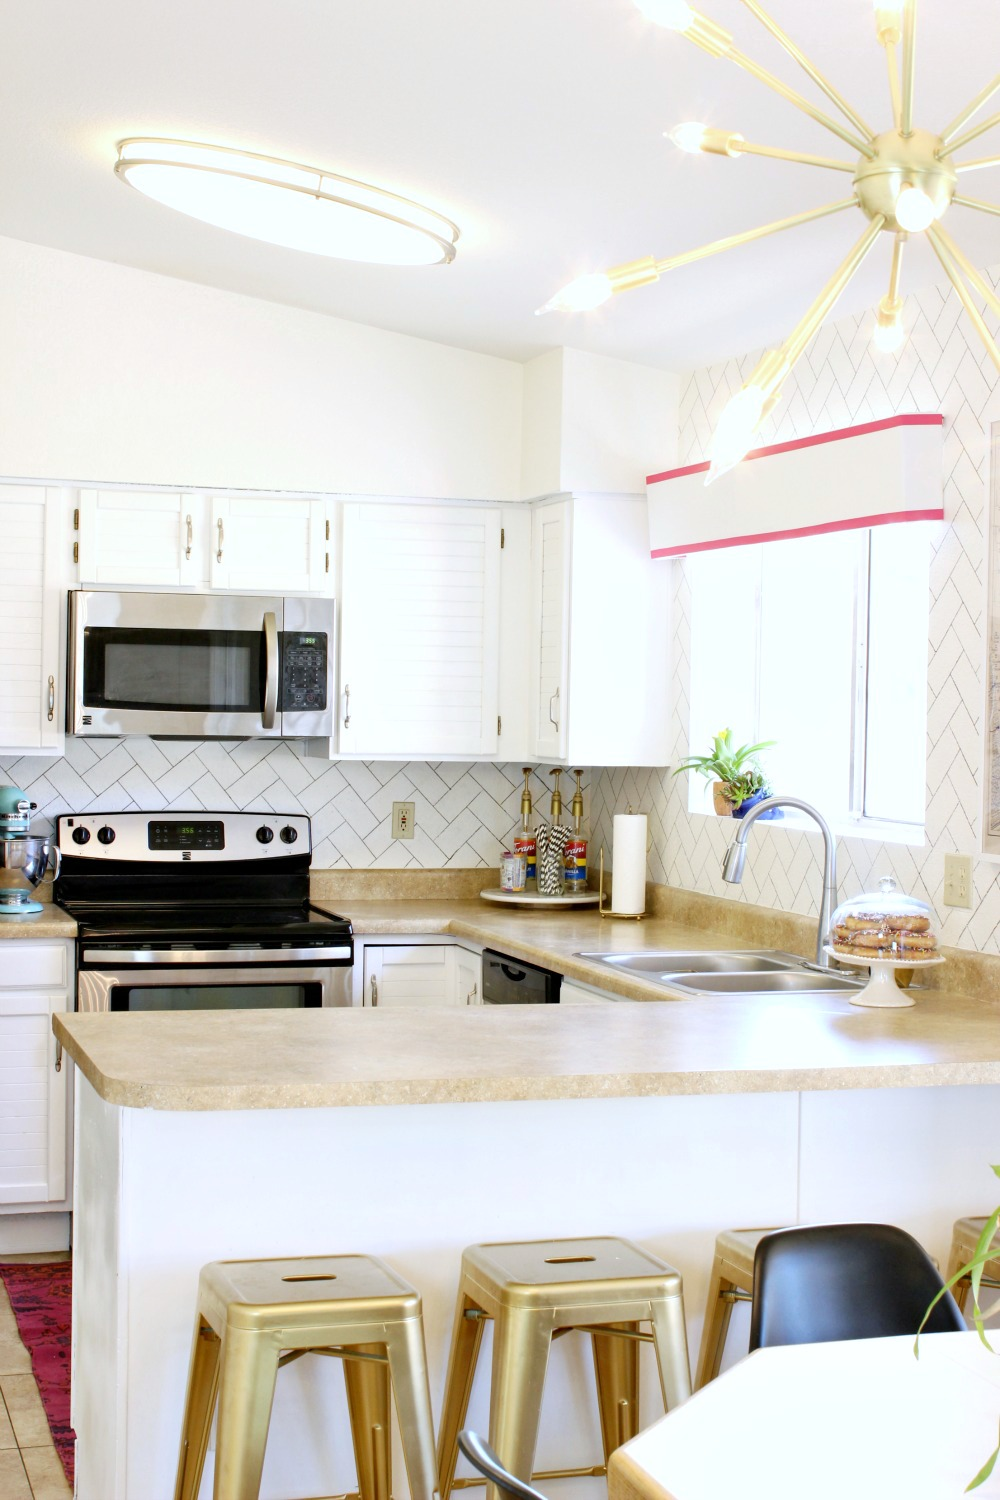 Mallory's Kitchen Makeover